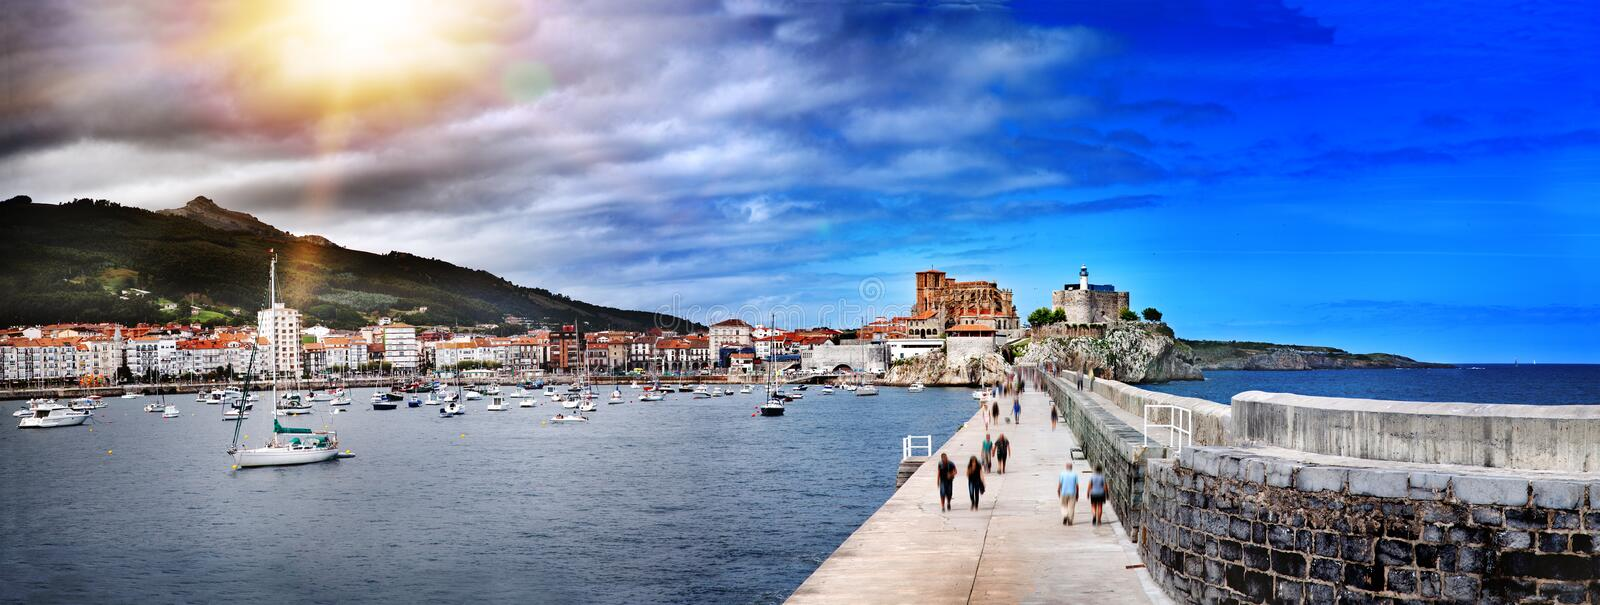 Beautiful panoramic view of the port city of Castro Urdiales, Cantabria. Tourism in coastal towns, northern Spain. Travel and tourist destinations concept royalty free stock photo